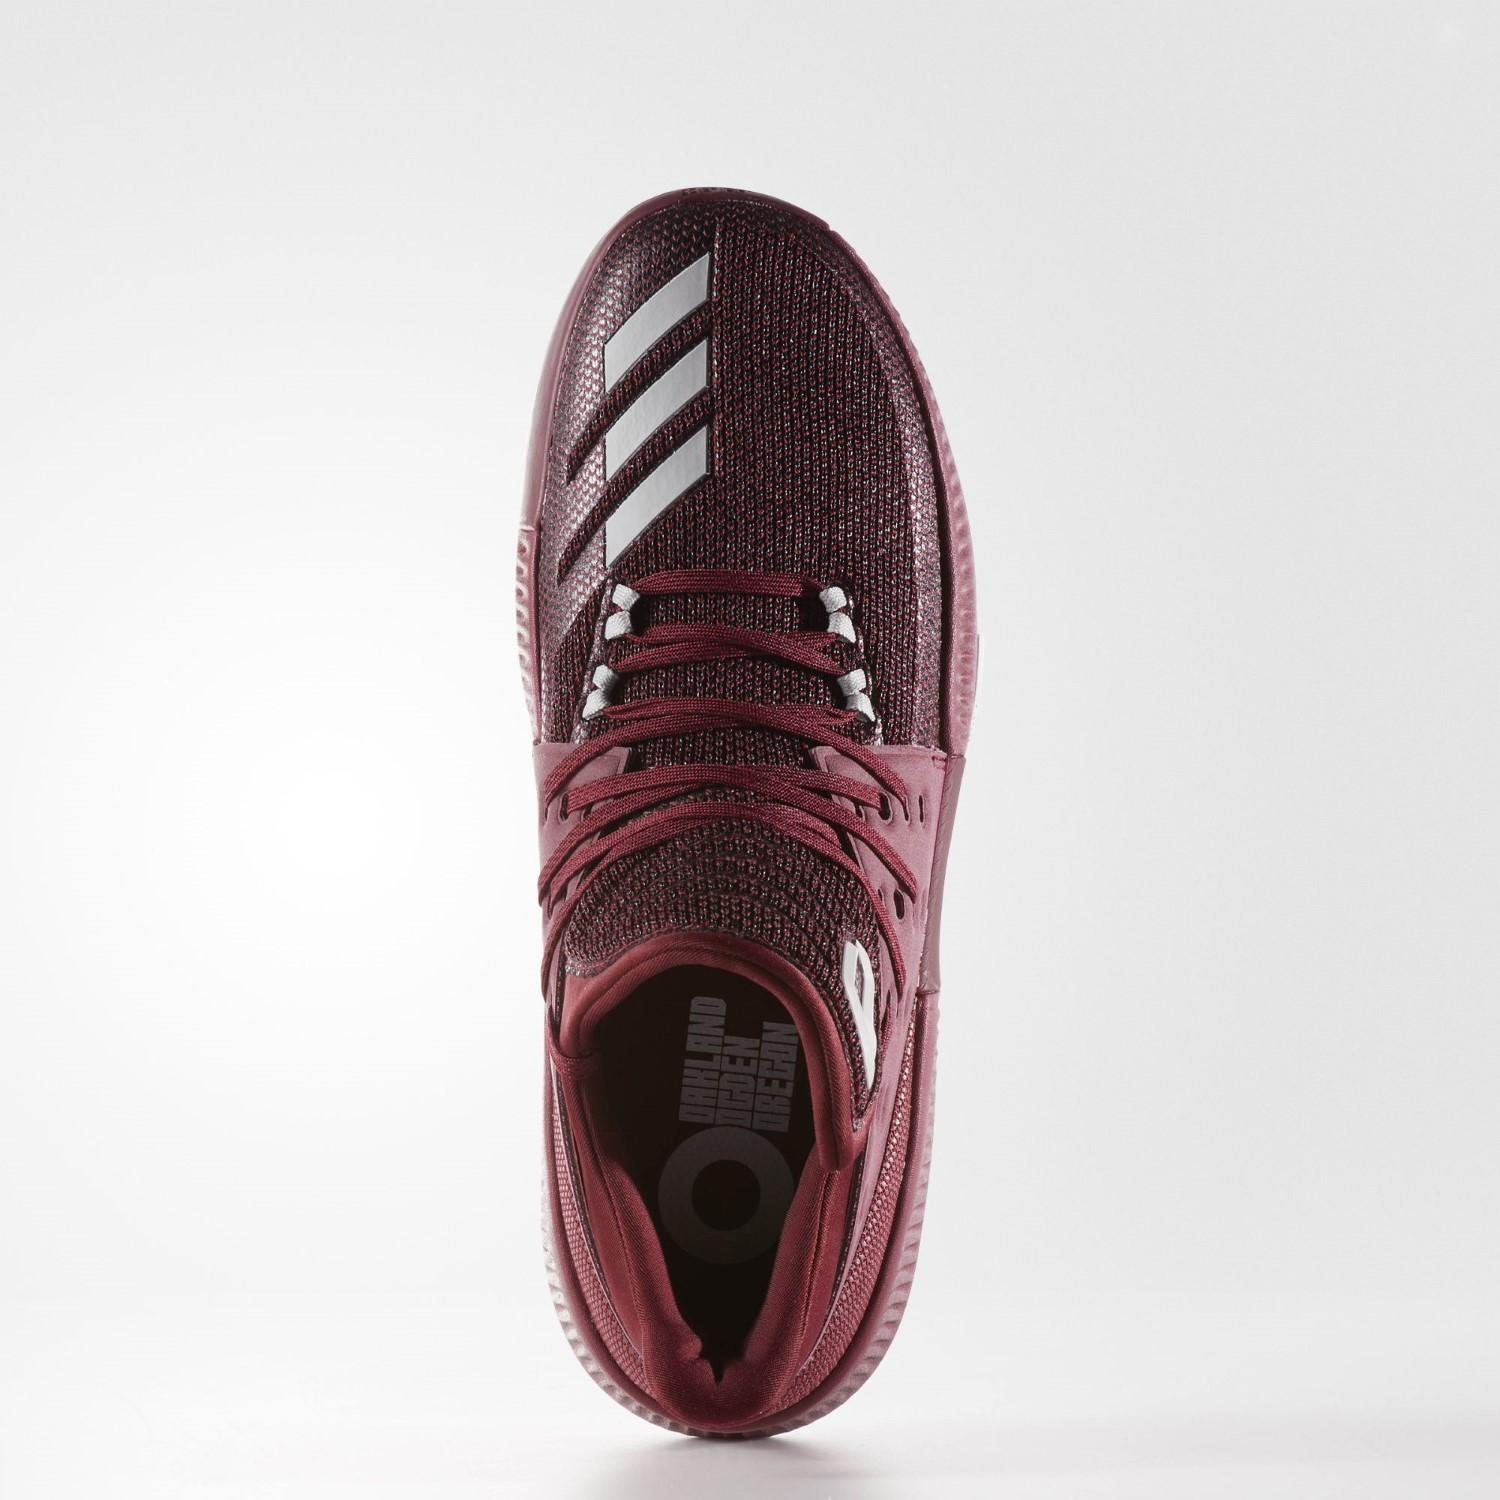 promo code 1c8eb b08aa Adidas - Multicolor Dame 3 Shoes for Men - Lyst. View fullscreen